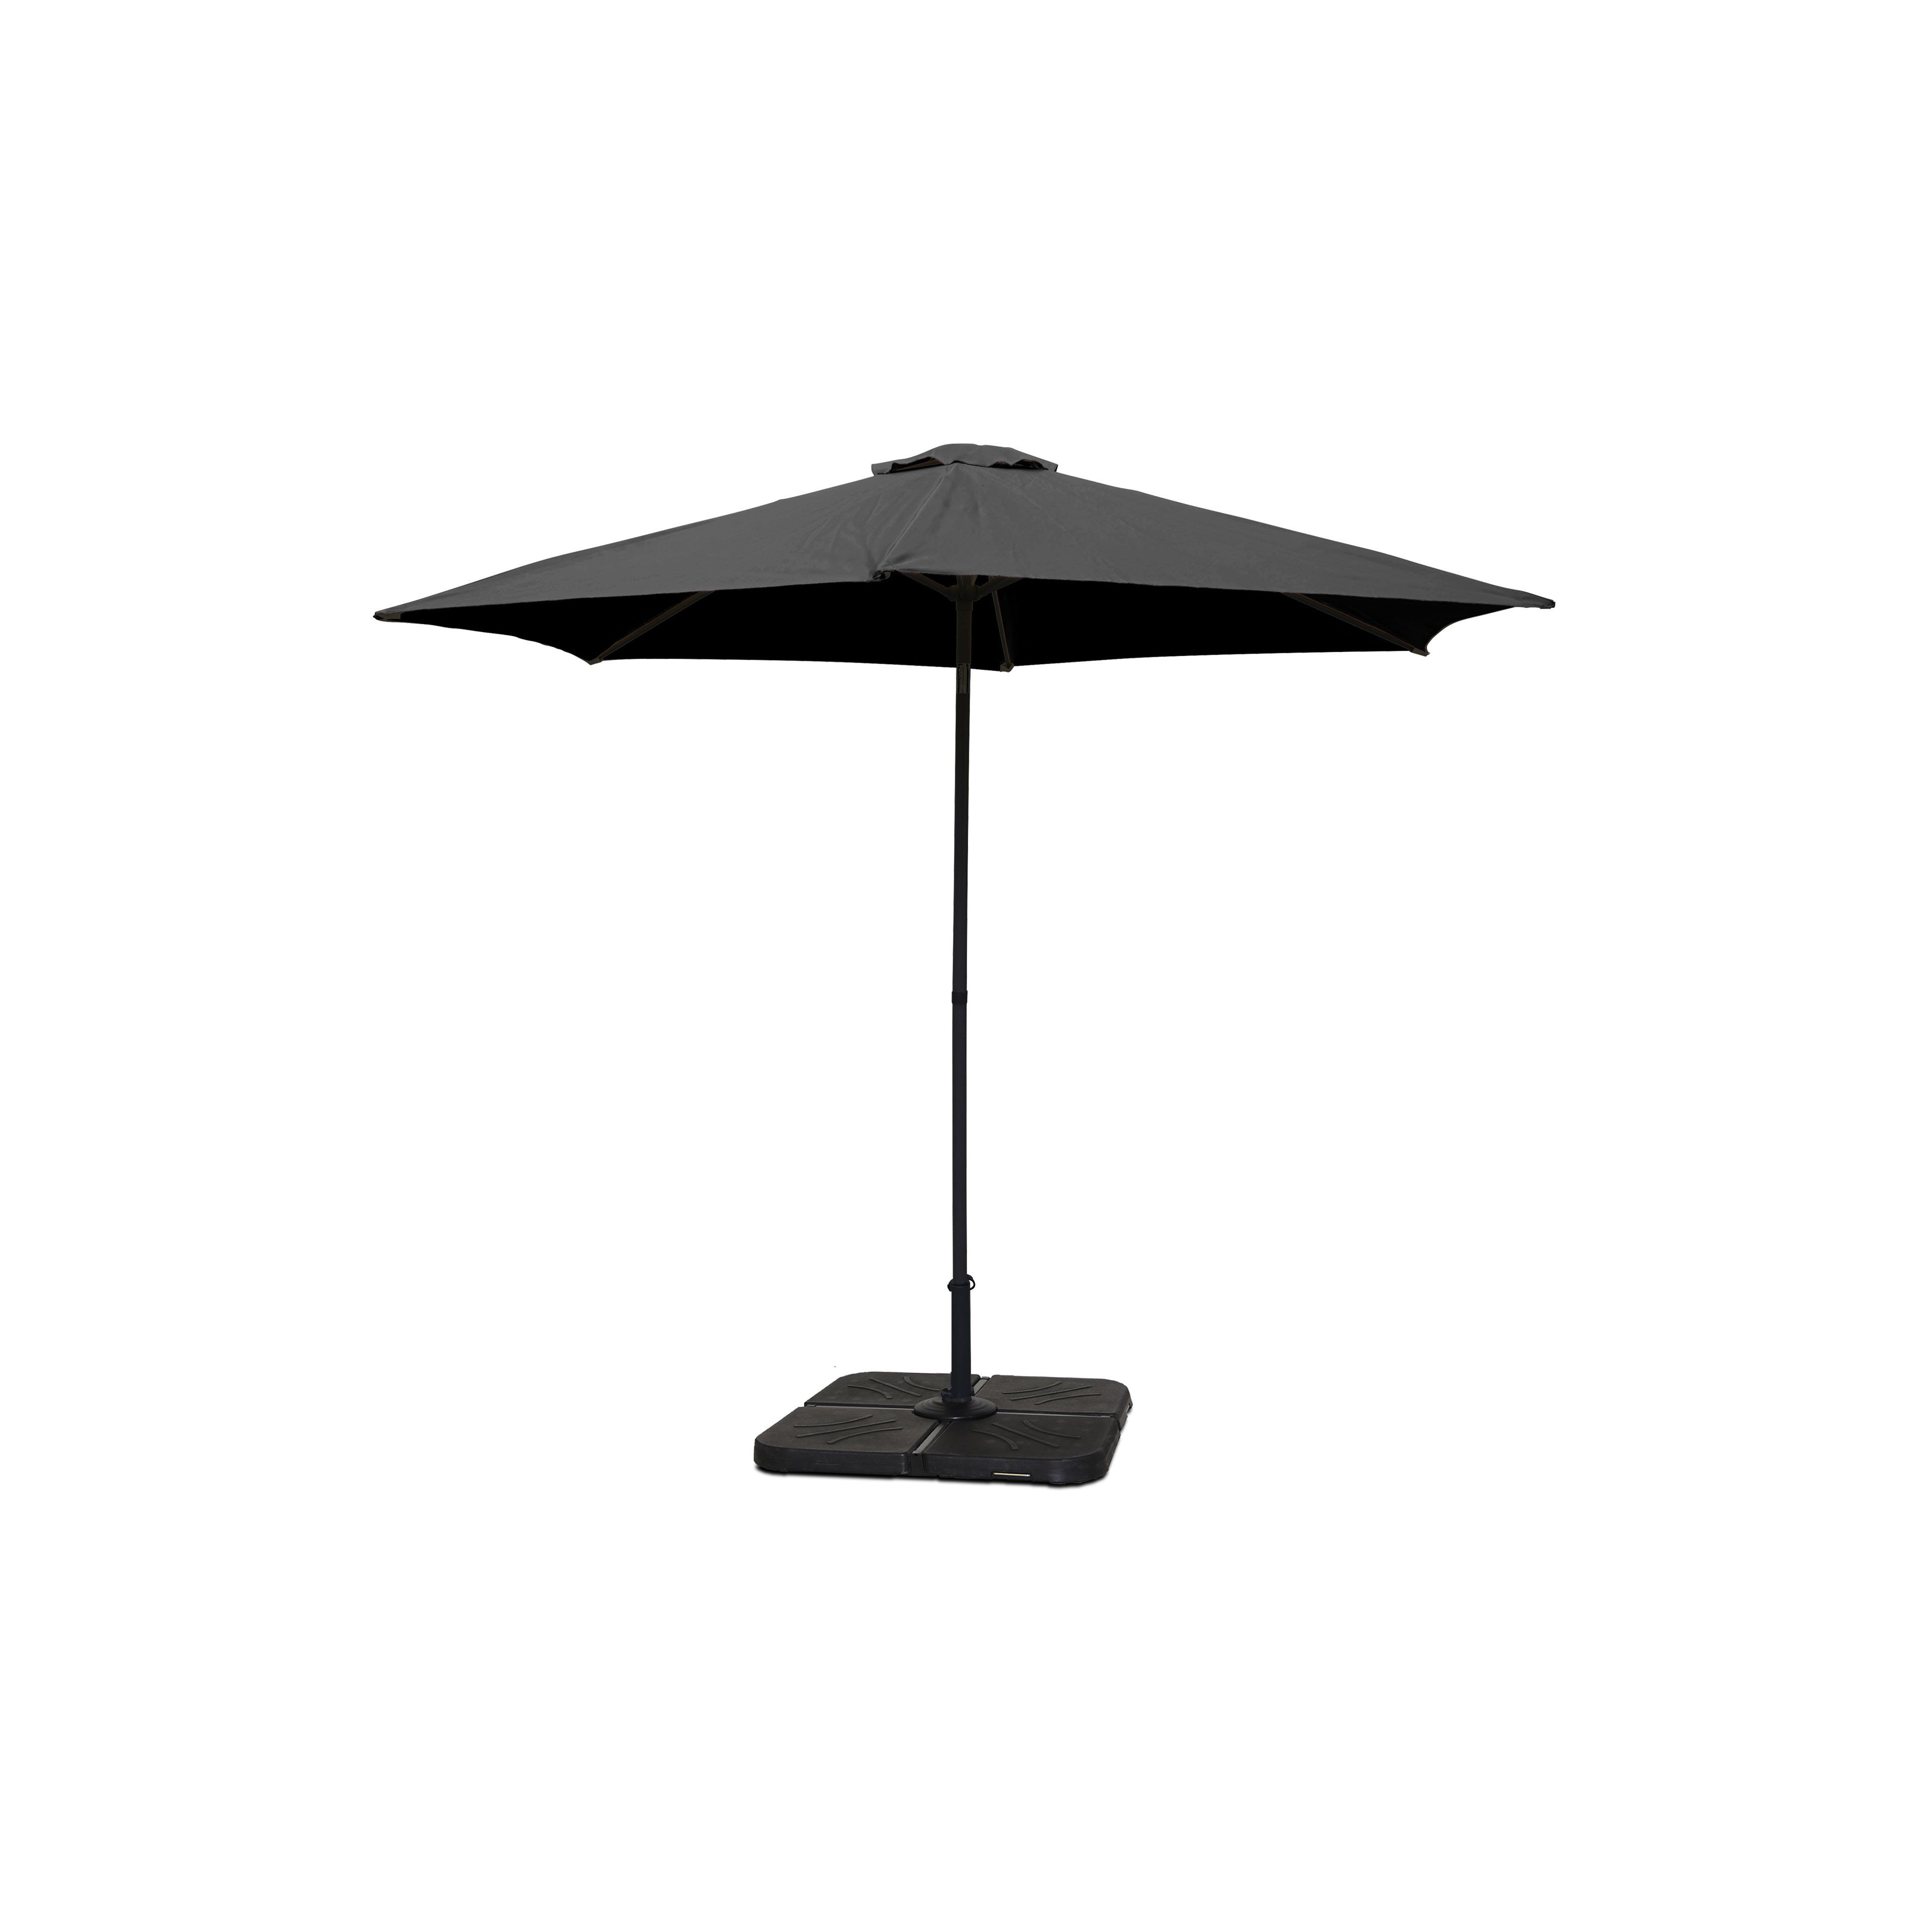 Parasol Droit Inclinable Rond Oviala